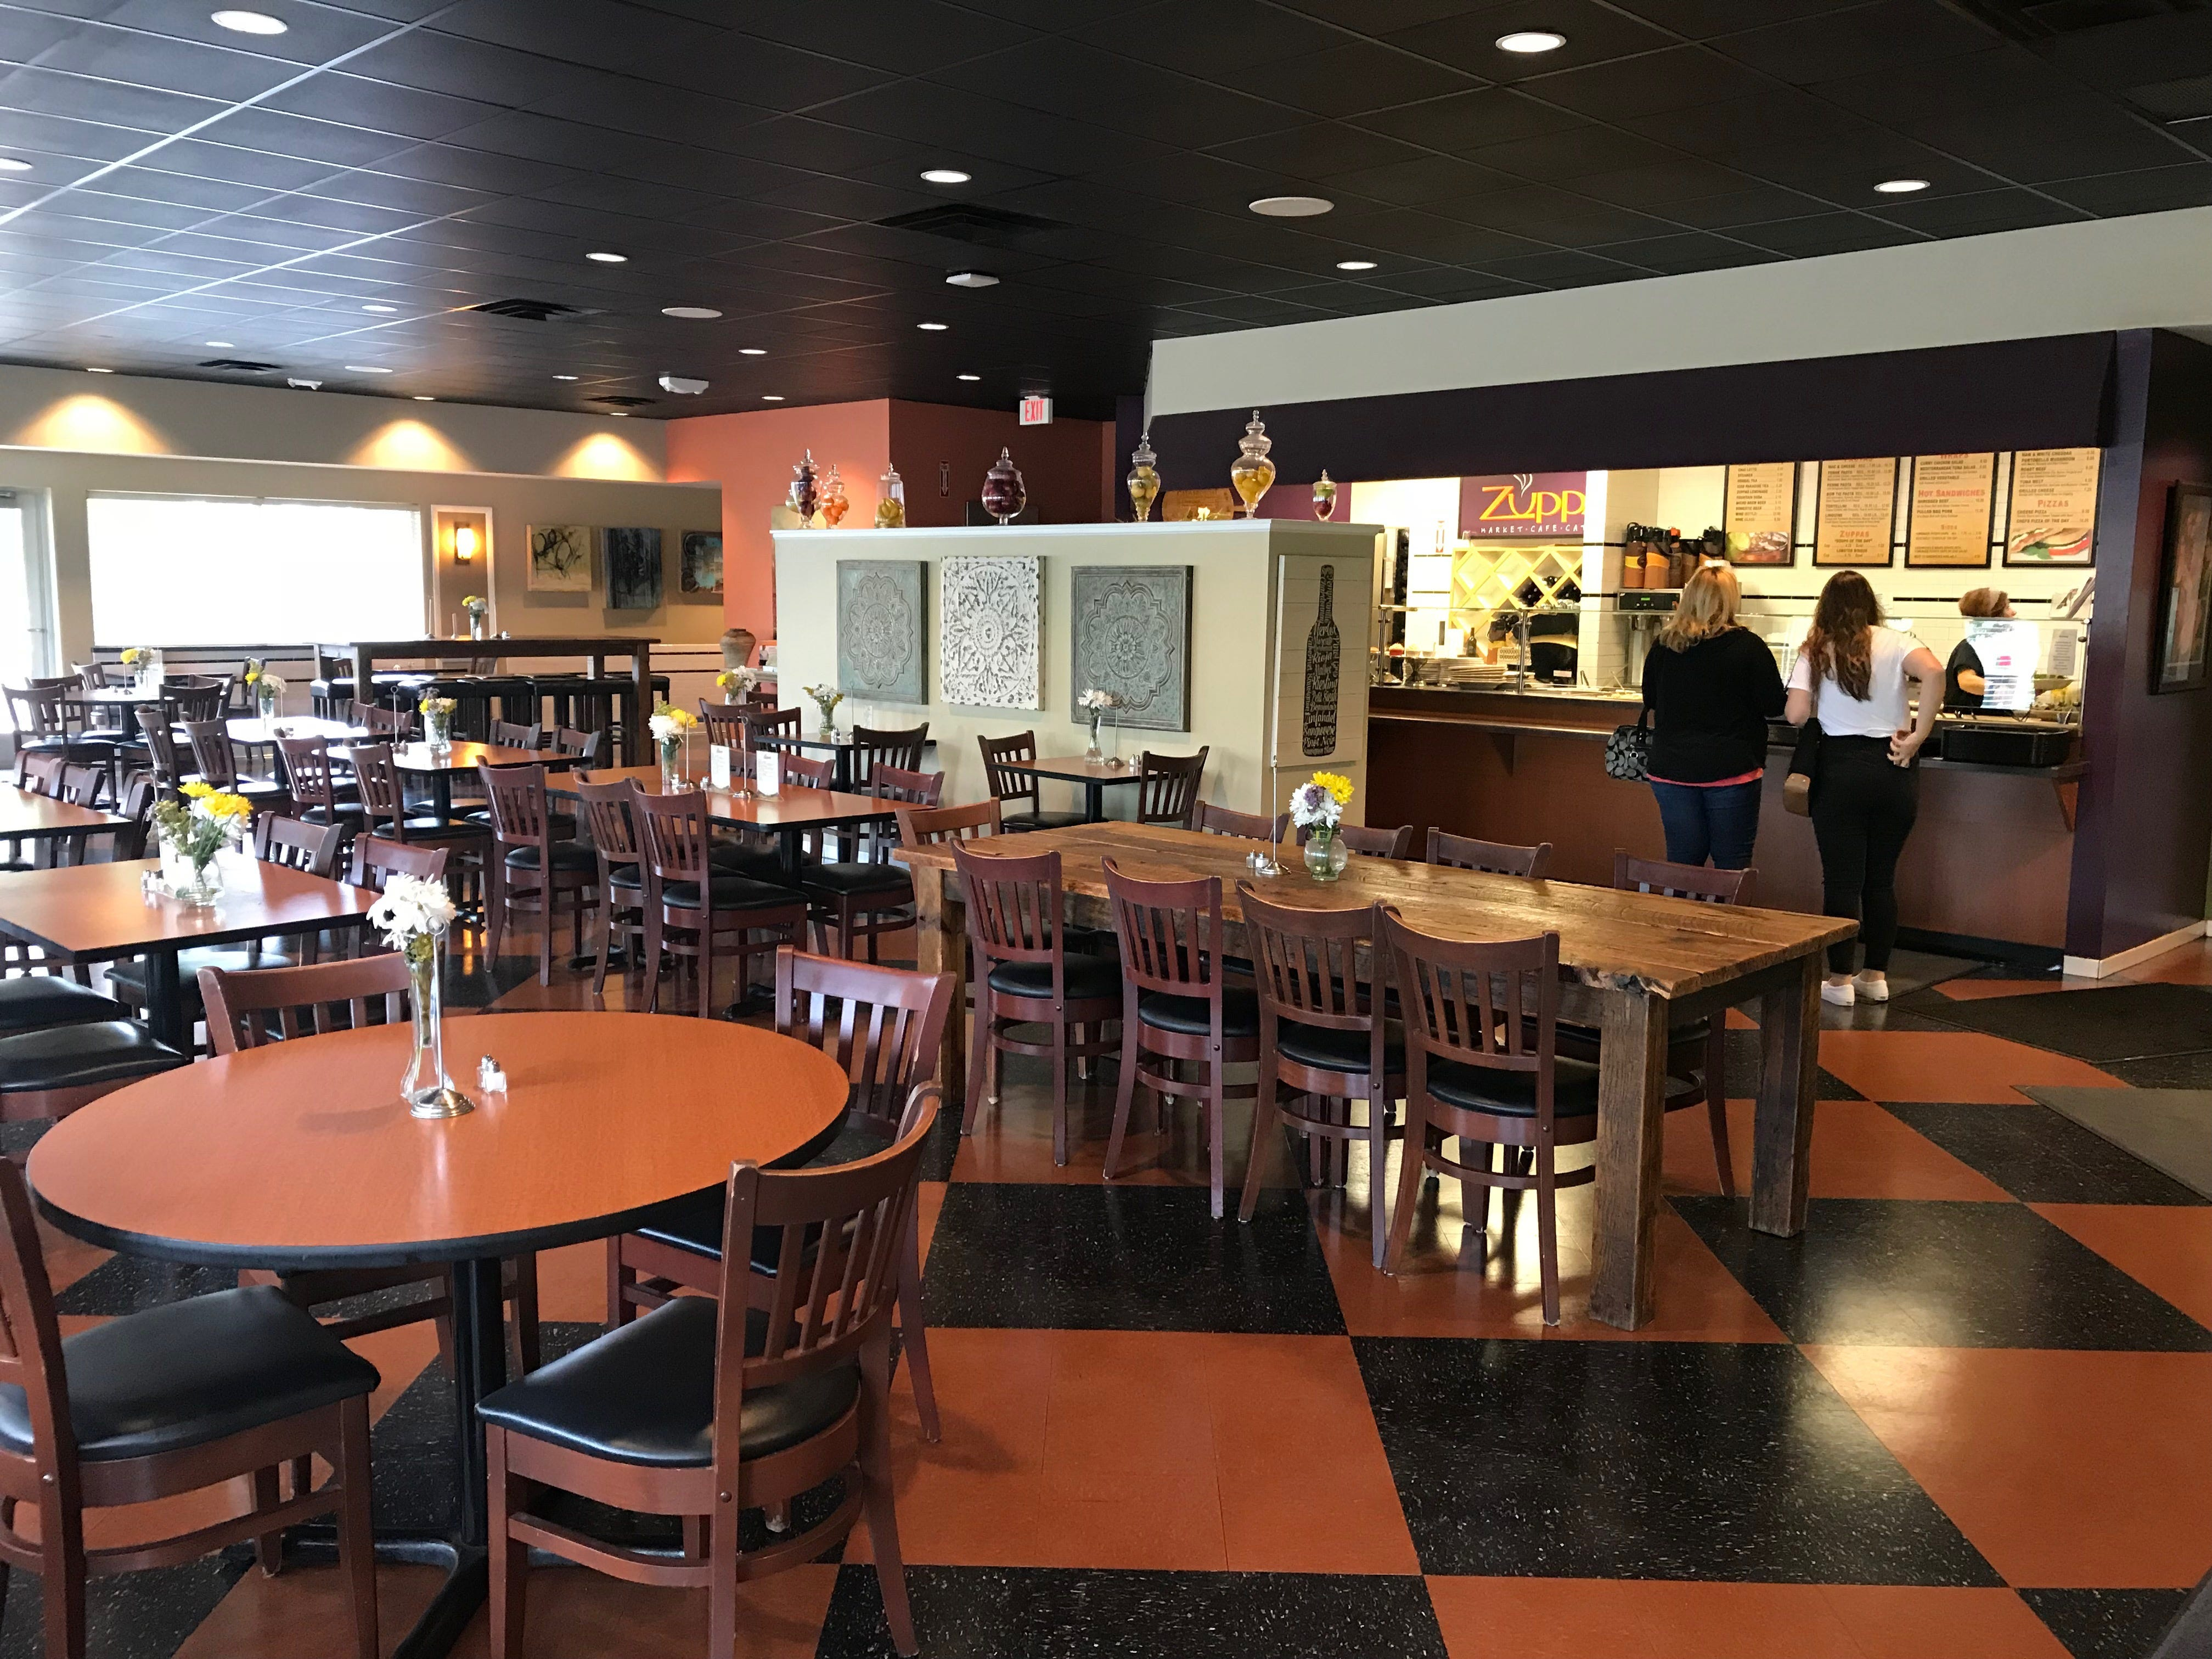 Zuppas prepares from scratch food but serves it fast casual style with cafeteria line of hot and cold options. Everything is available for carry out from the pasta salads to full meatloaf dinners and pans of lasagna and homemade soups.